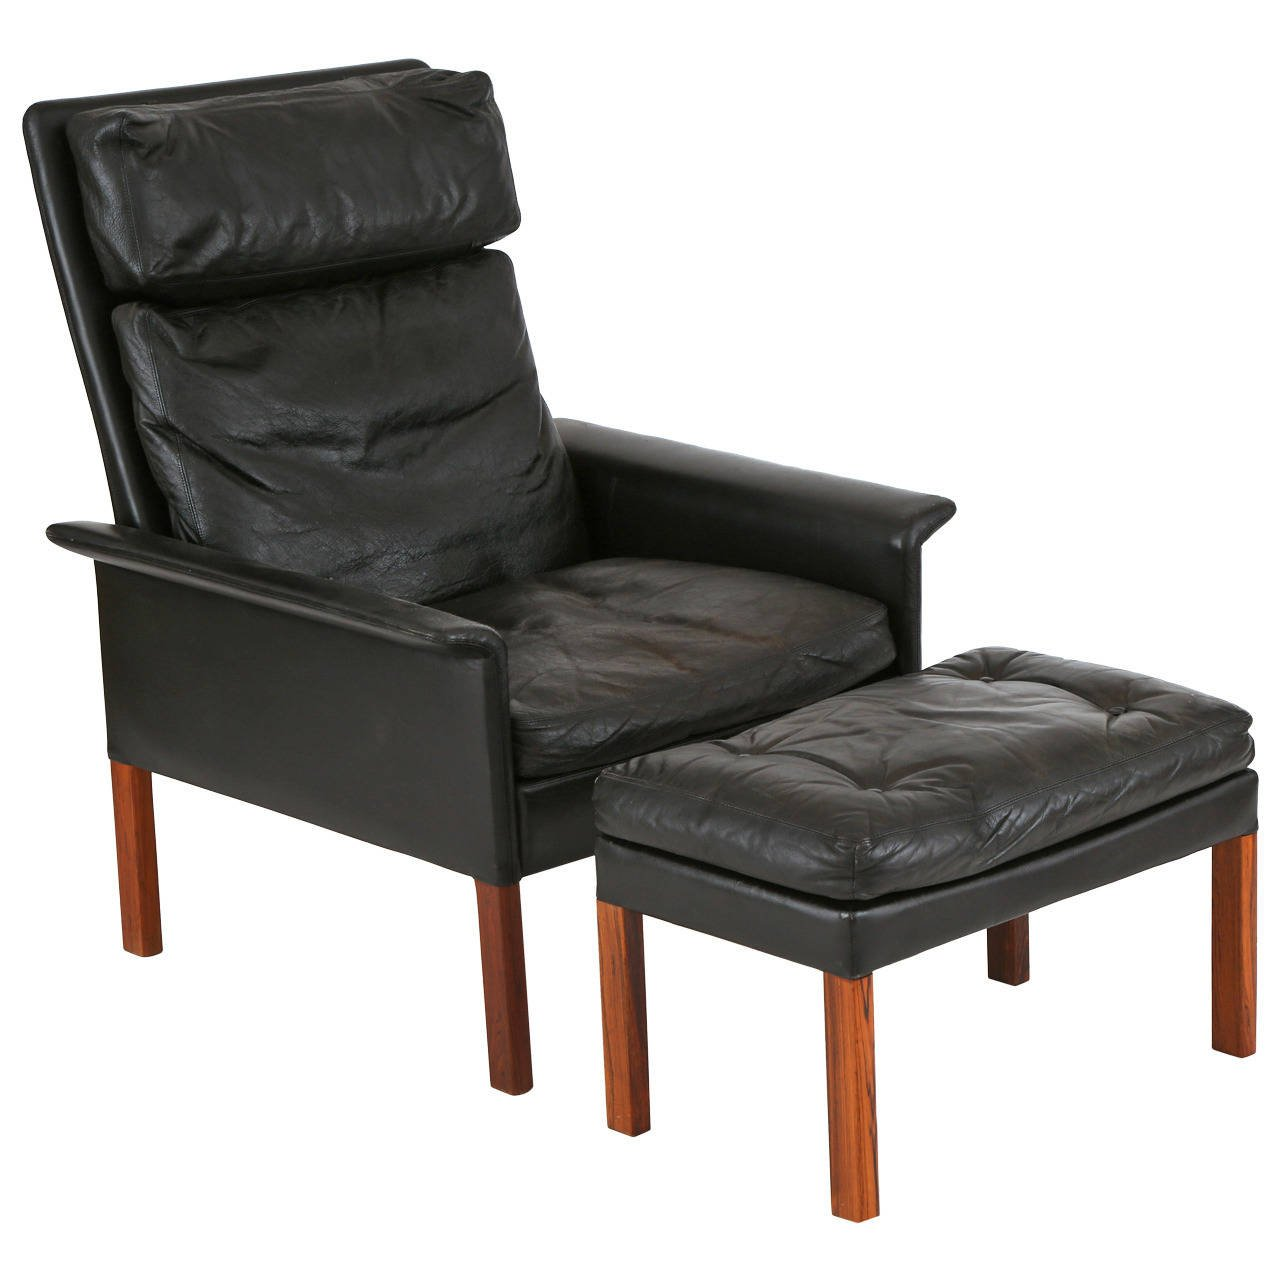 Leather Chairs And Ottomans Sale Hans Olsen Leather And Rosewood Lounge Chair And Ottoman